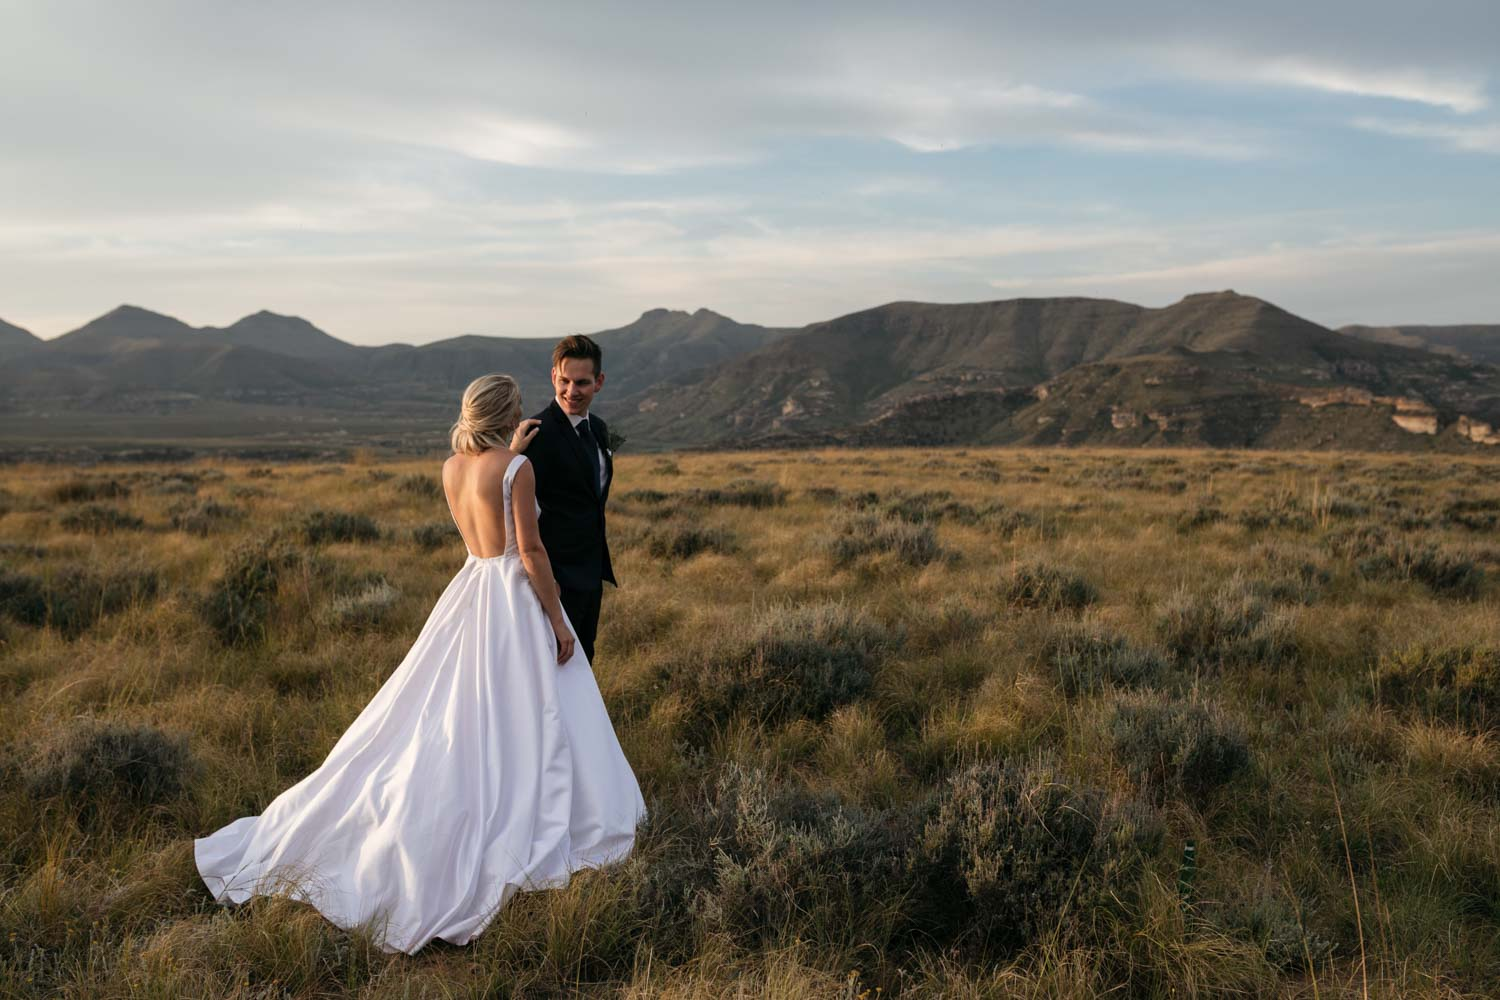 Epic Wedding Photo Of Bride And Groom In Golden Field Overlooking Mountains In Vancouver Whistler